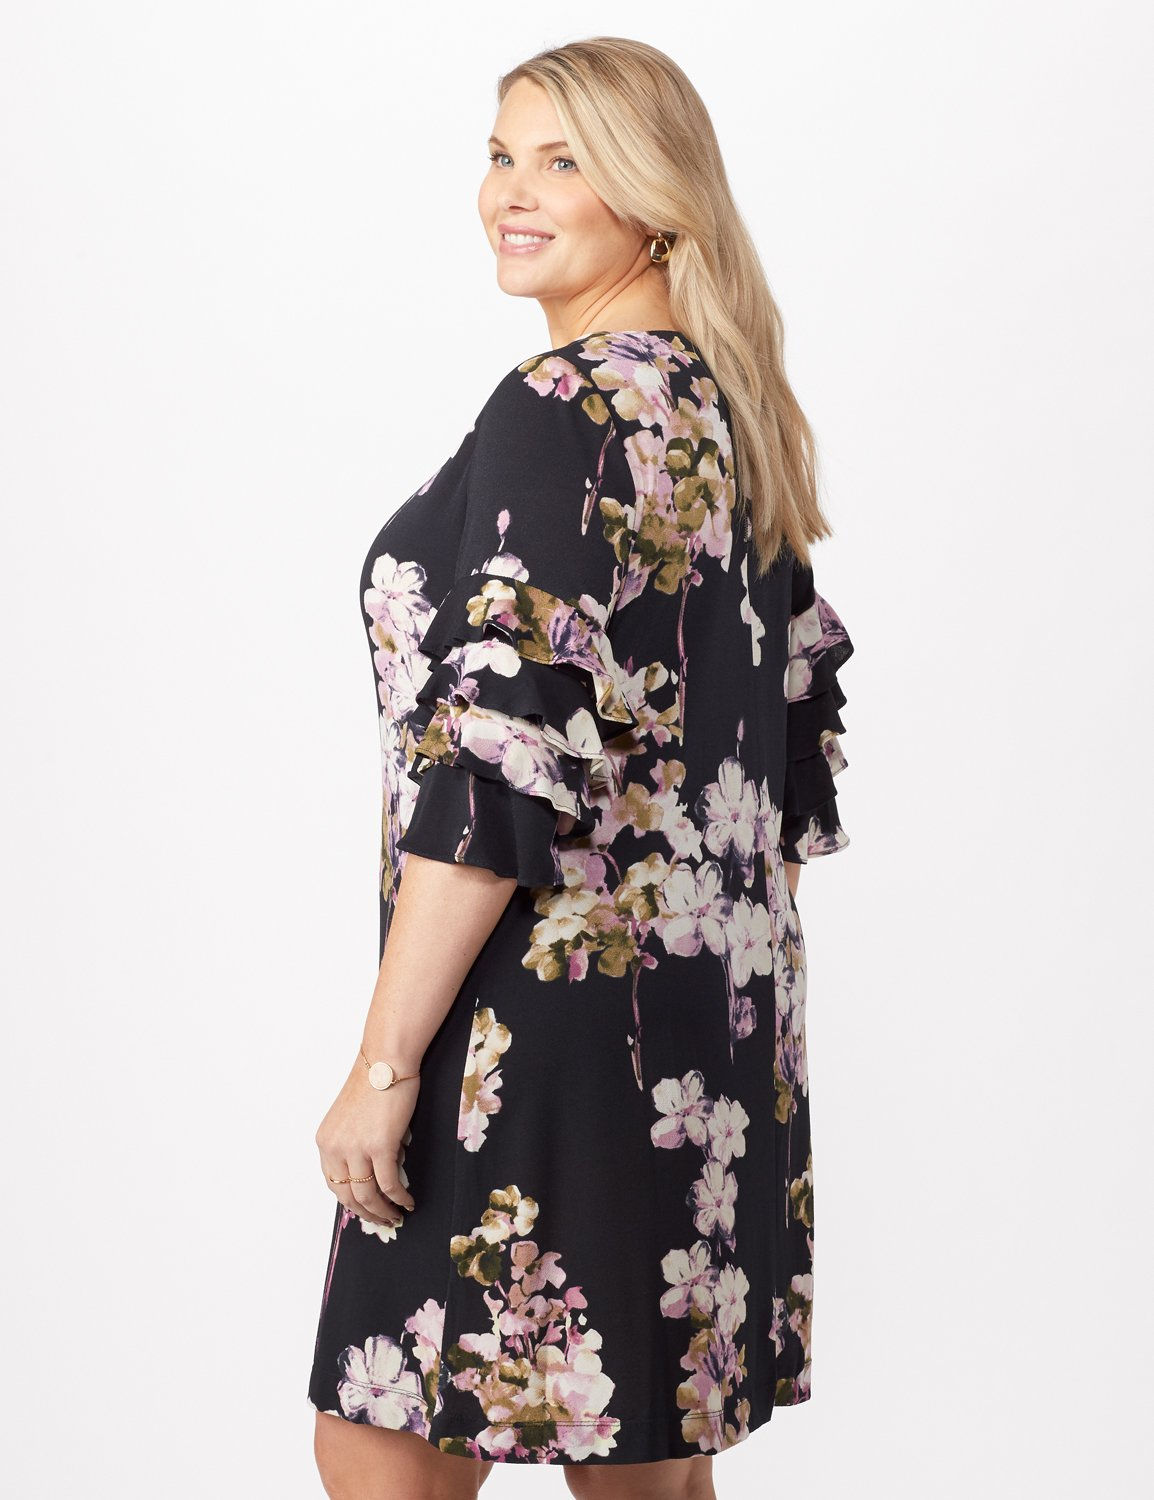 Chacha Sleeve Knit Crepe Floral Sheath Dress Plus -Navy/lavender - Back